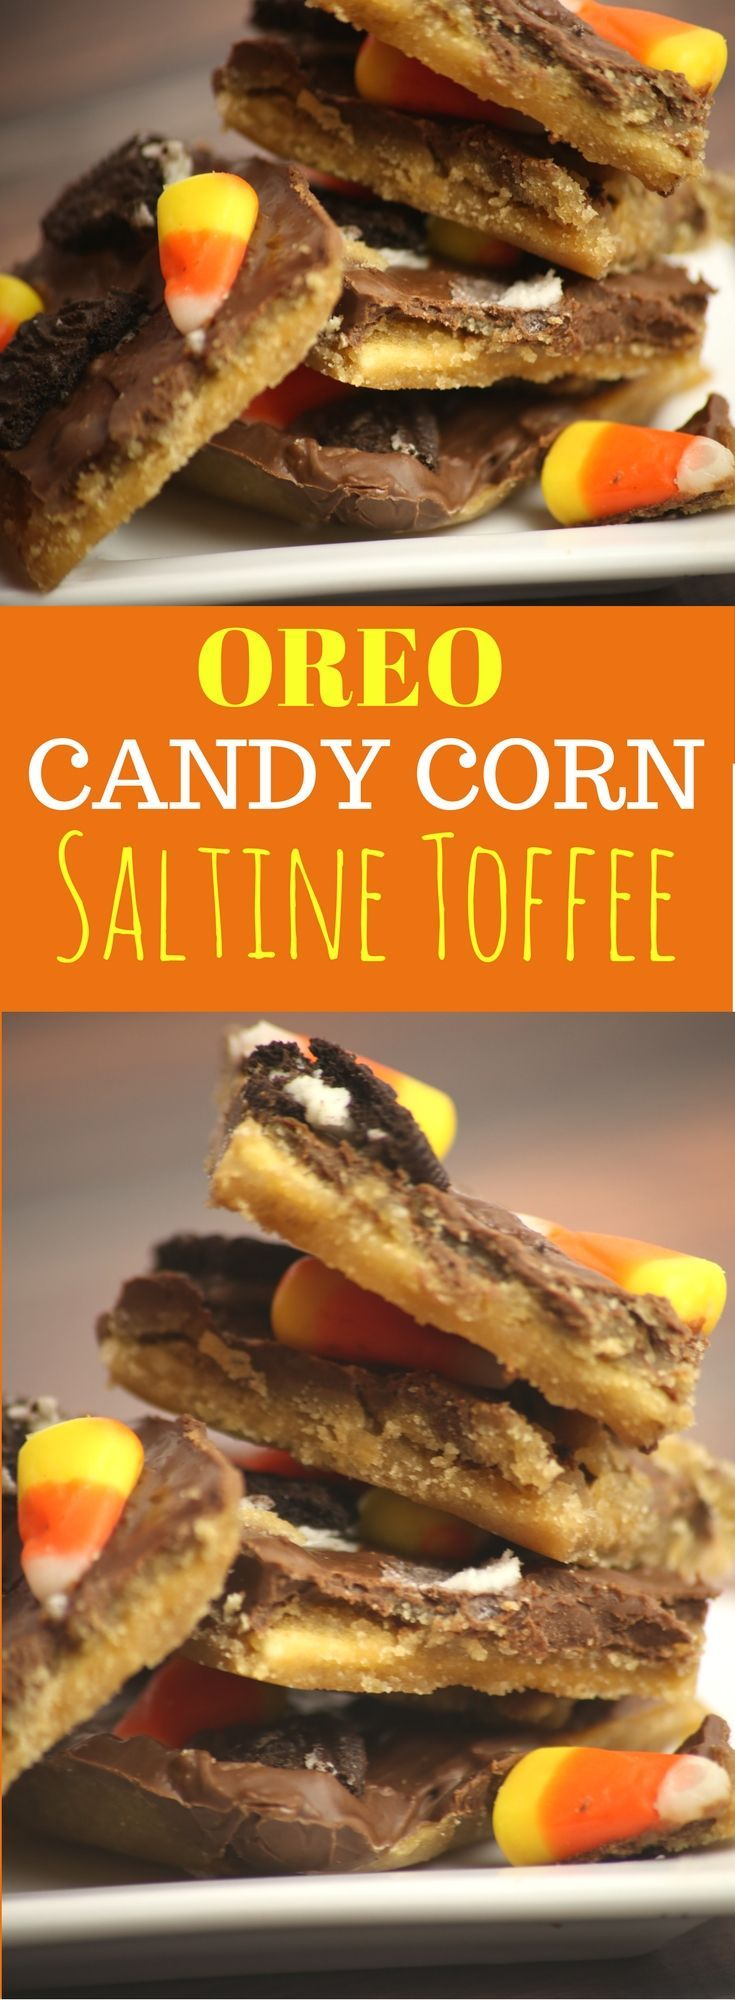 Elegant Halloween Food Recipes with Pictures